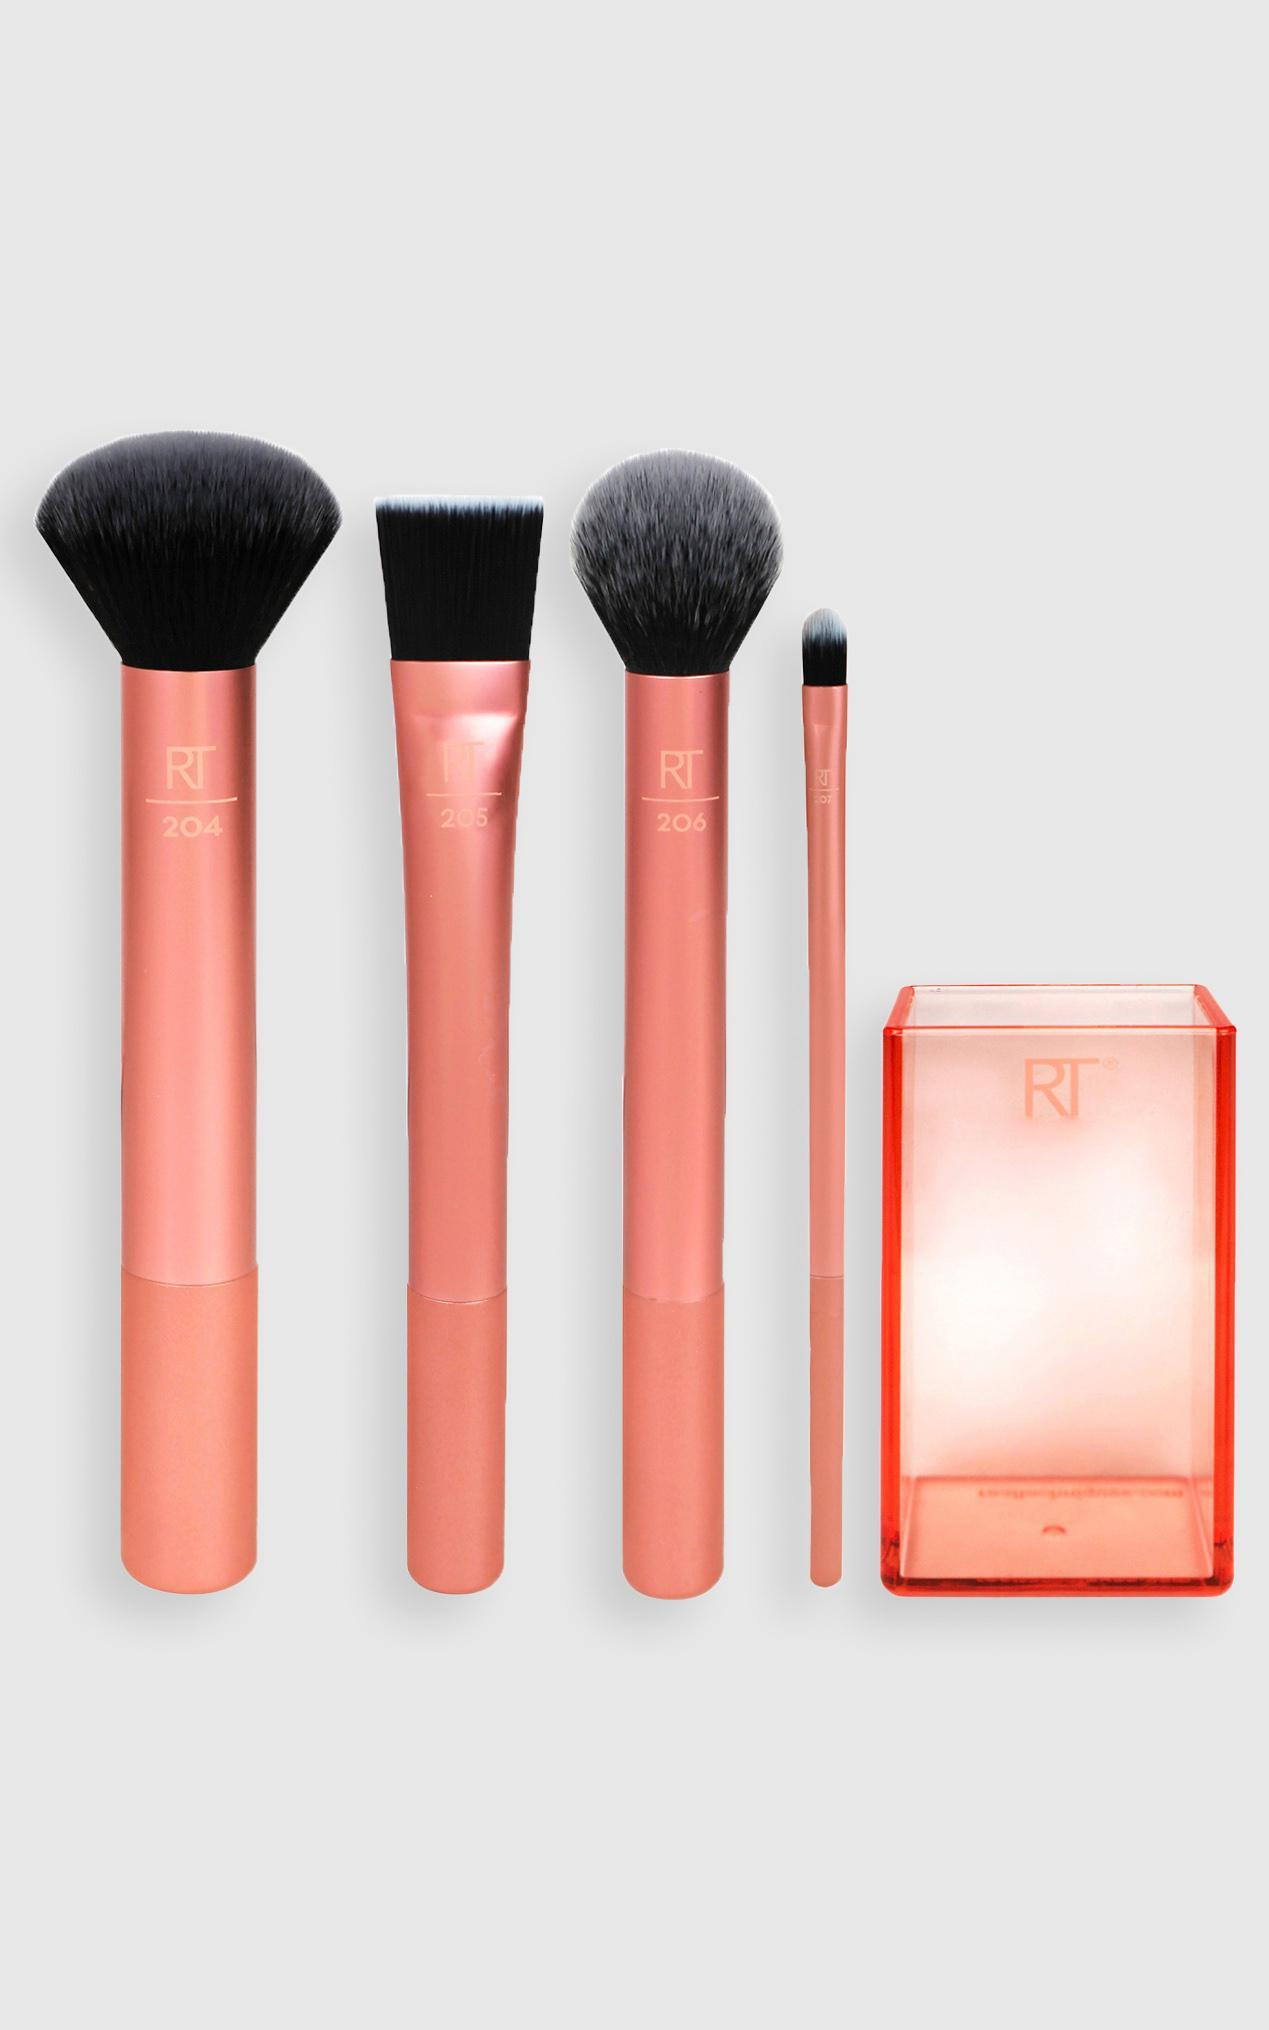 Real Techniques - Flawless Base Set in Pink, , hi-res image number null